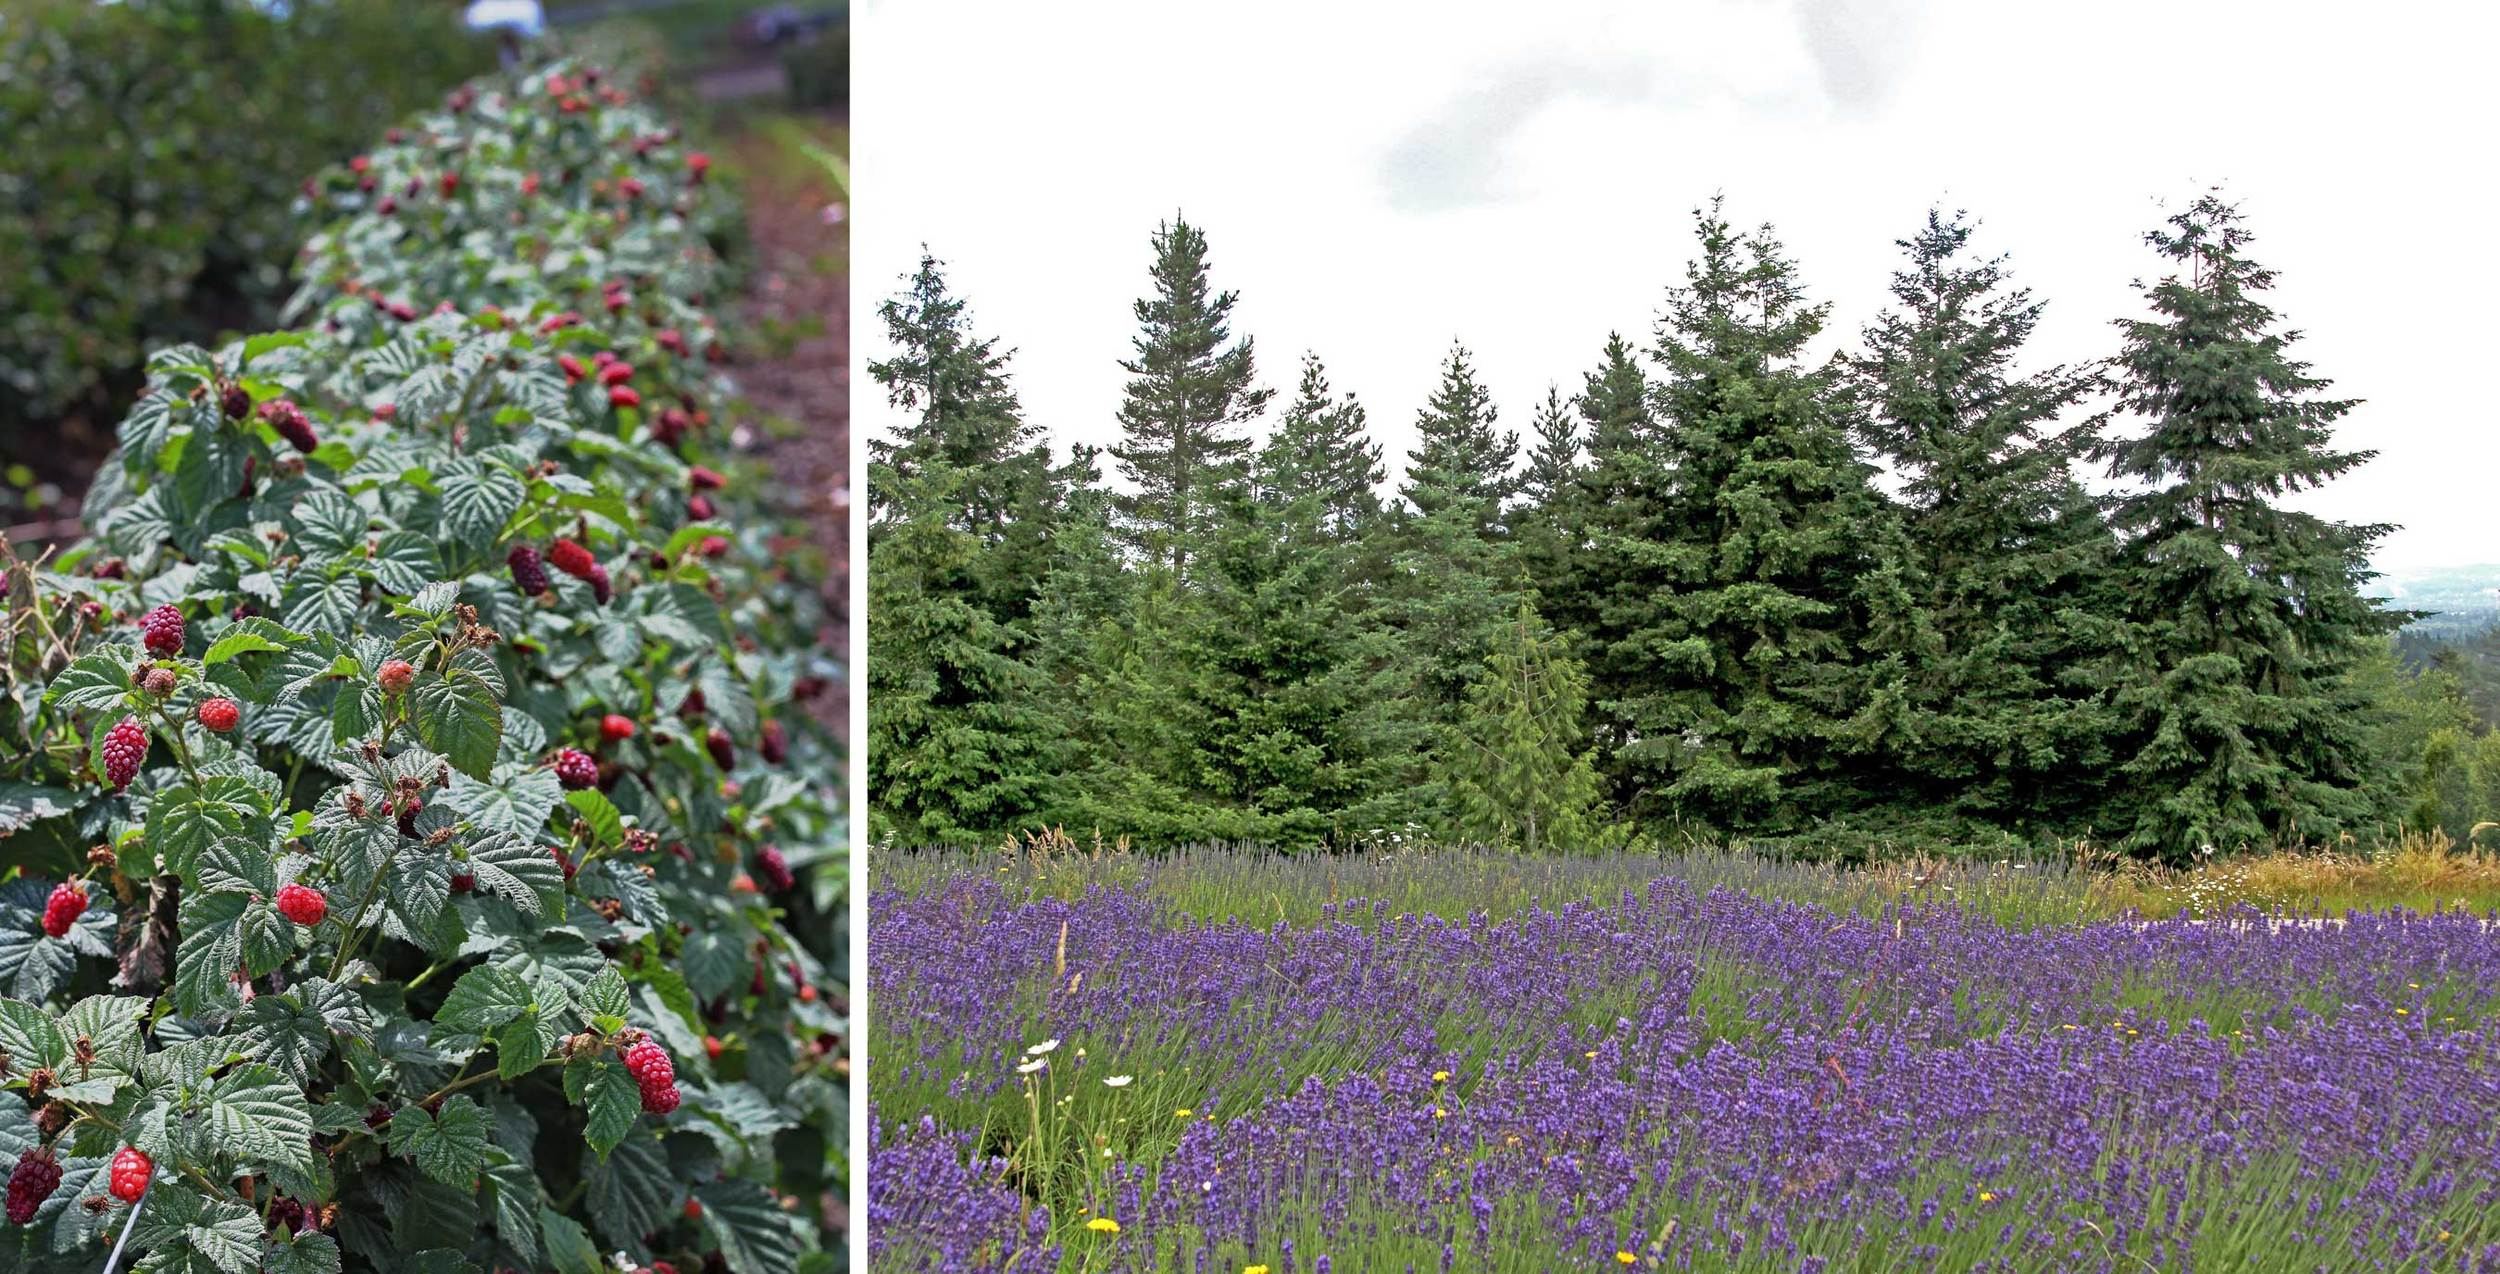 The beauty of Douglas fir, lavender fields and tayberries.  A beautiful part of the Oregon summer.  Find a recipe using these ingredients at Thread & Whisk blog.